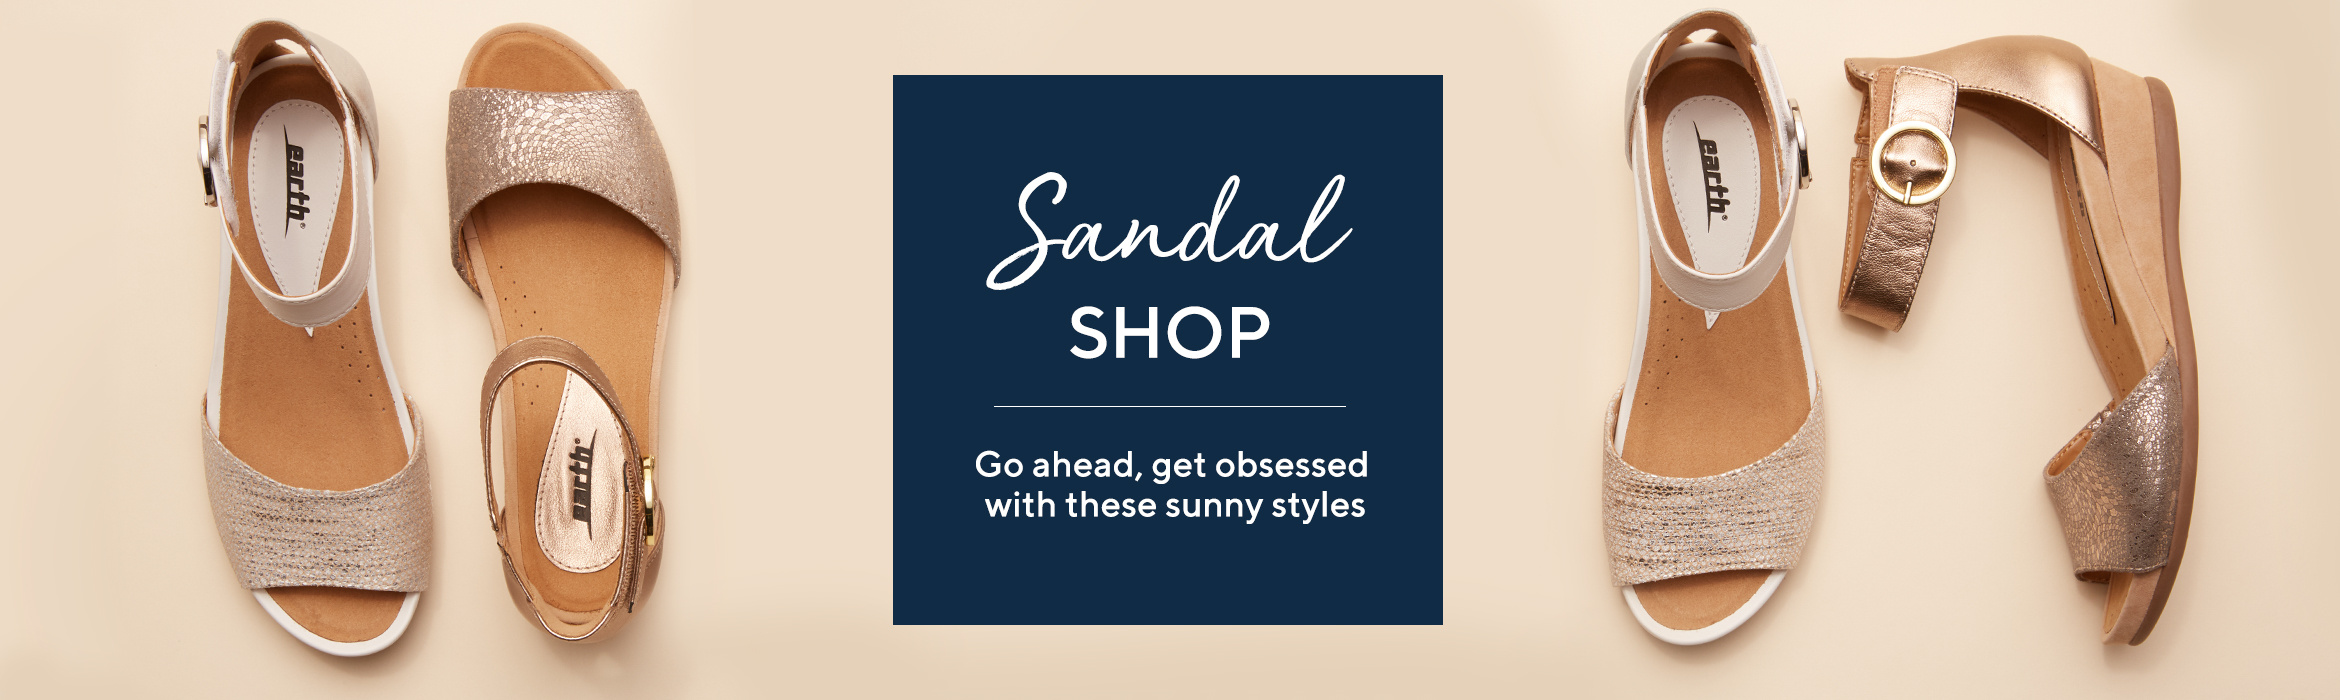 449217d3da6dd ... Sandal Shop Go ahead, get obsessed with these sunny styles